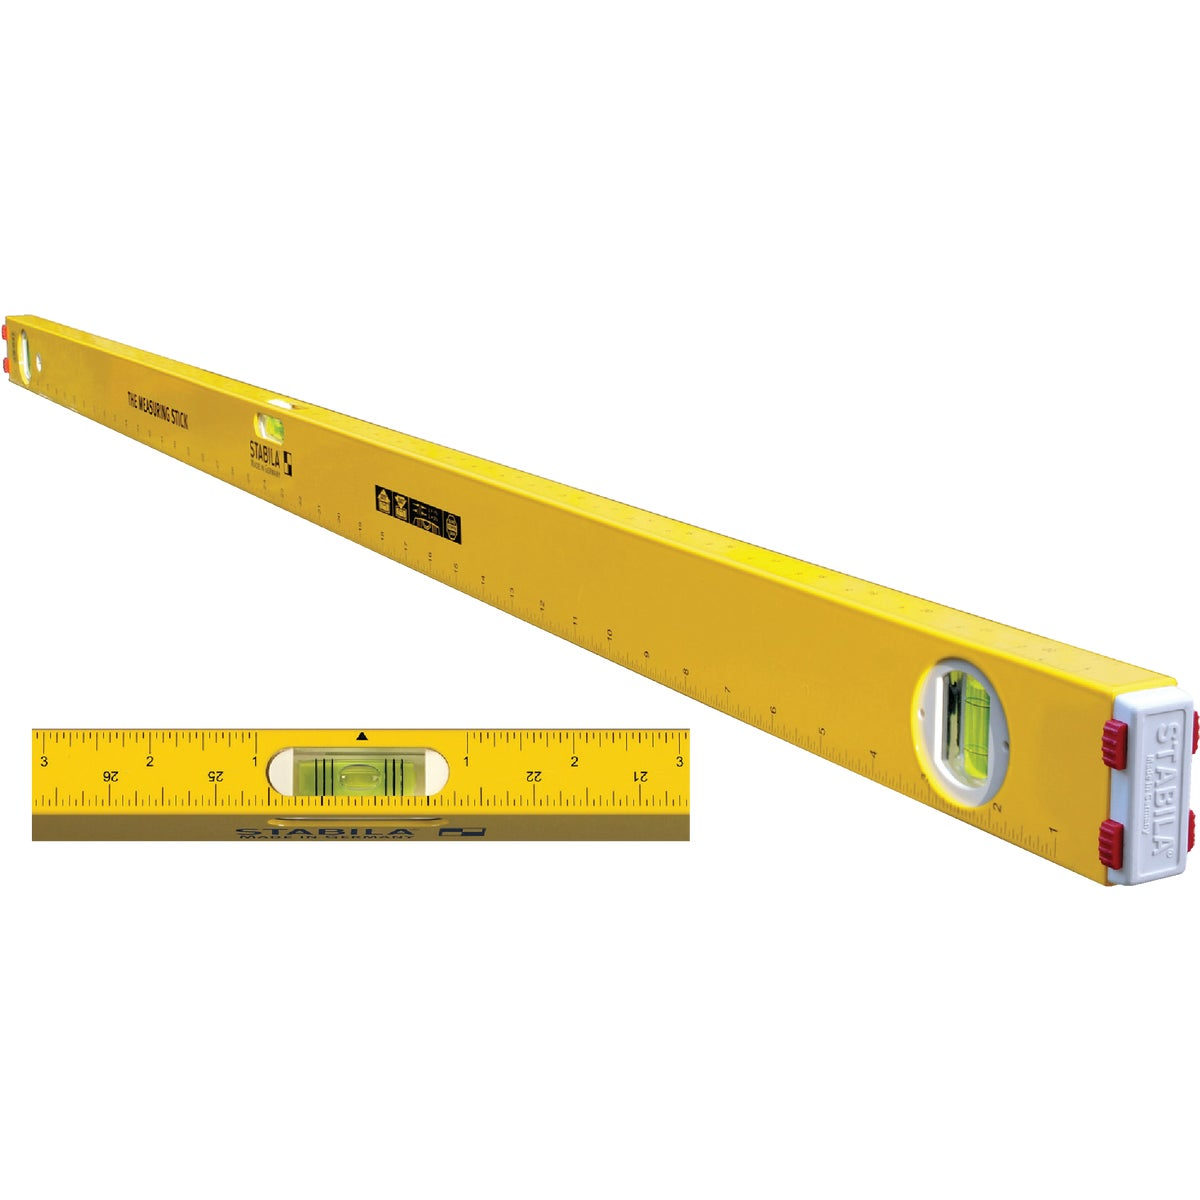 "48"" MEASURE STICK - 29148 by Stabila"